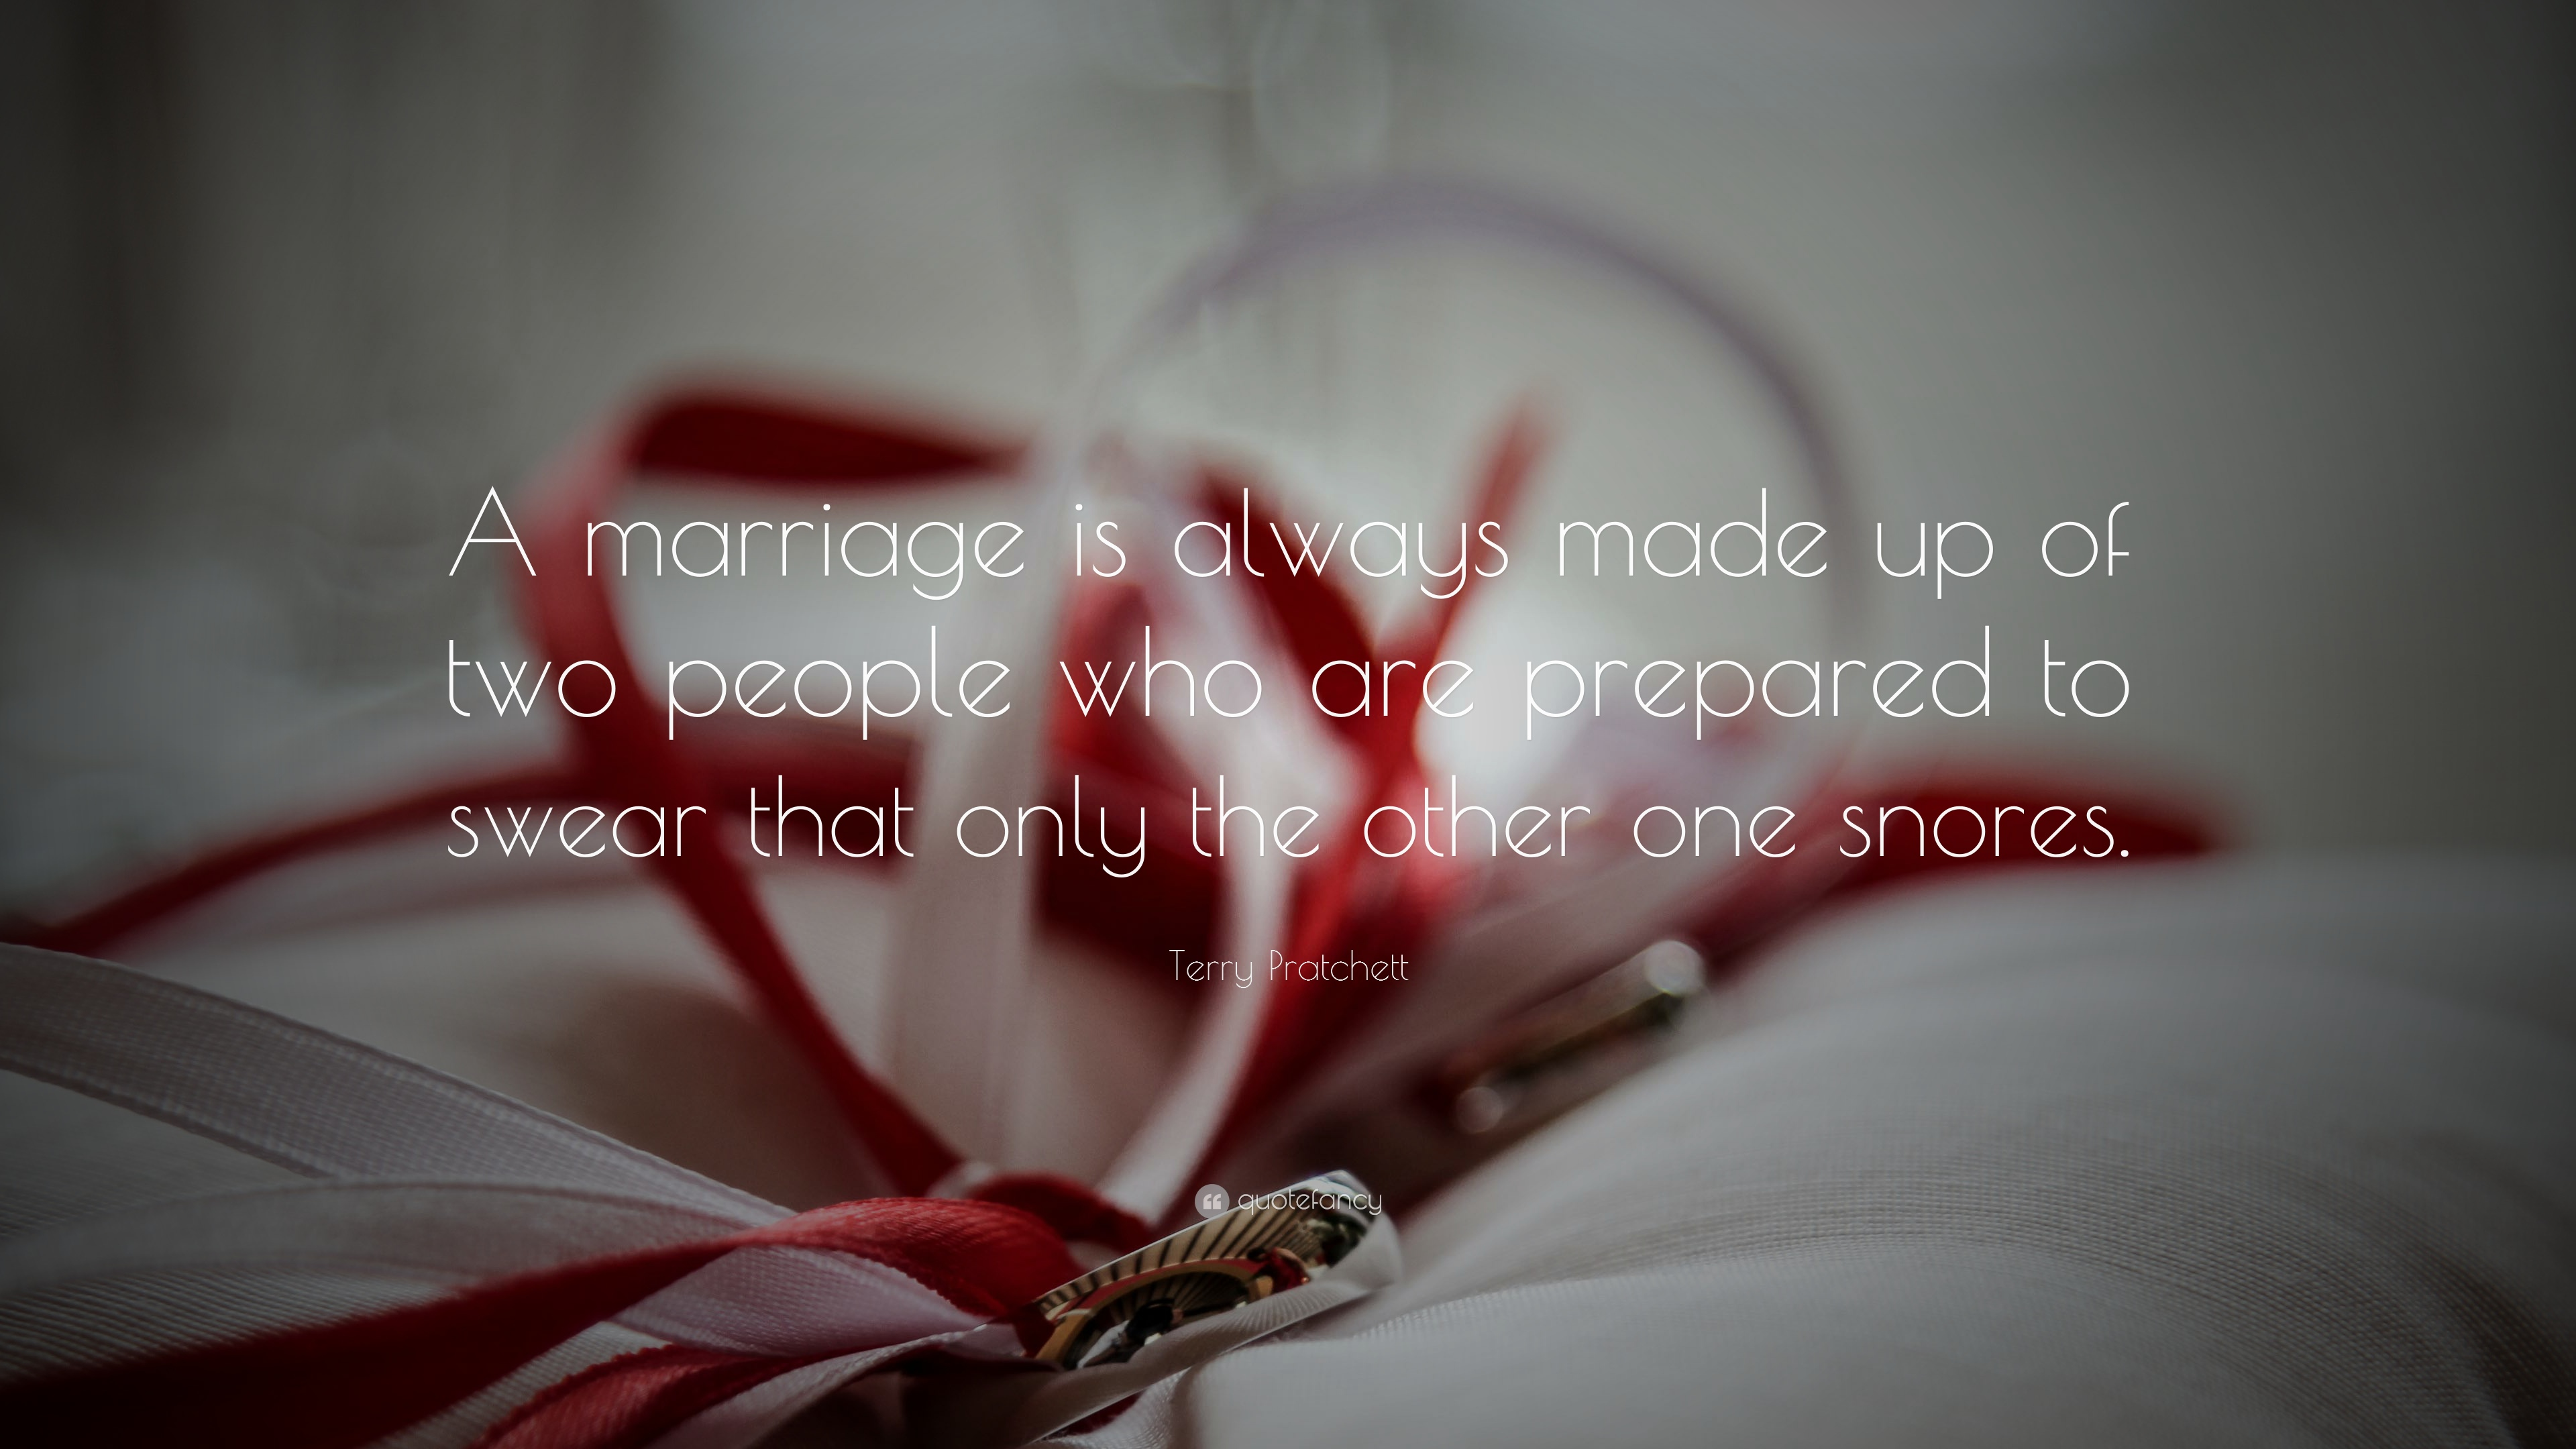 Love Marriage Quotes Fair Marriage Quotes 58 Wallpapers  Quotefancy